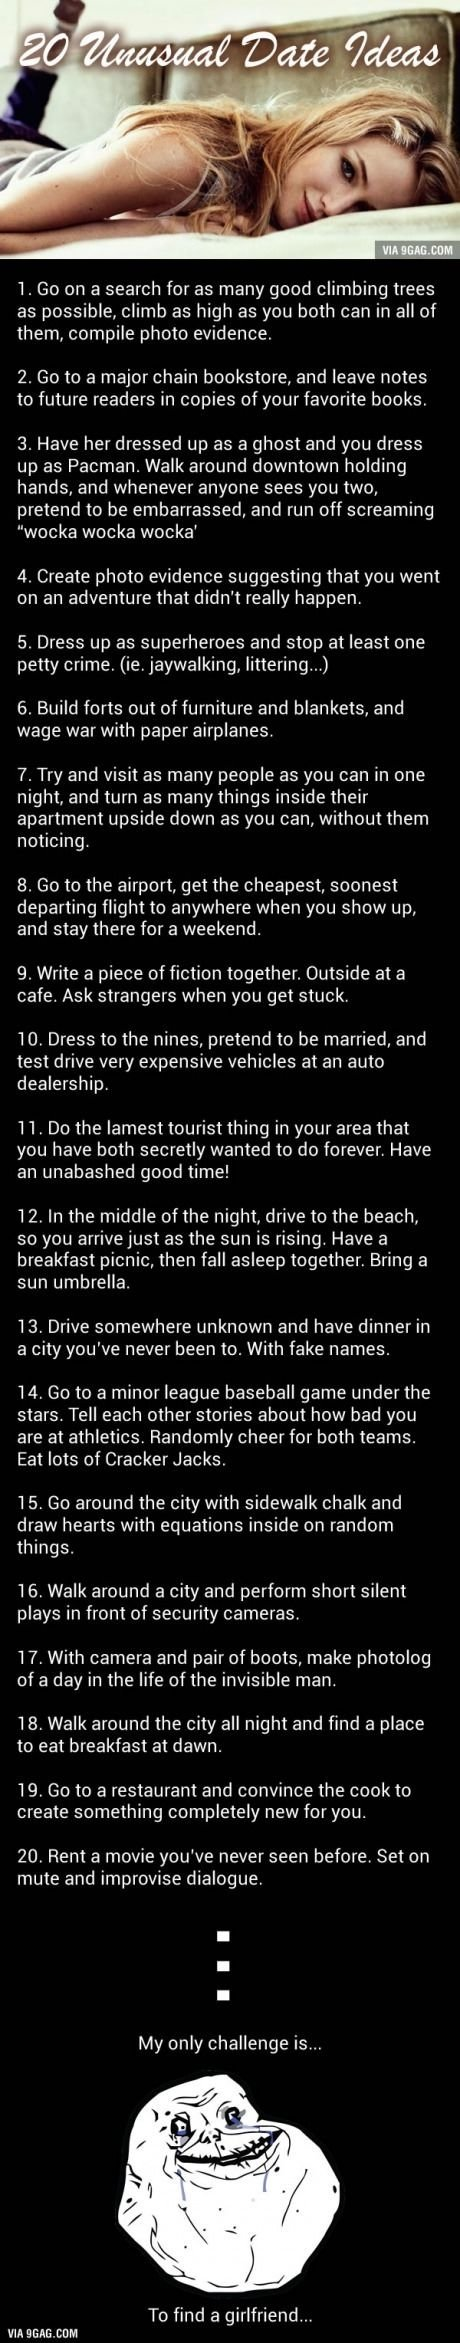 10 Most Recommended Birthday Date Ideas For Girlfriend 73 Best Boyfriend E29da4 Images